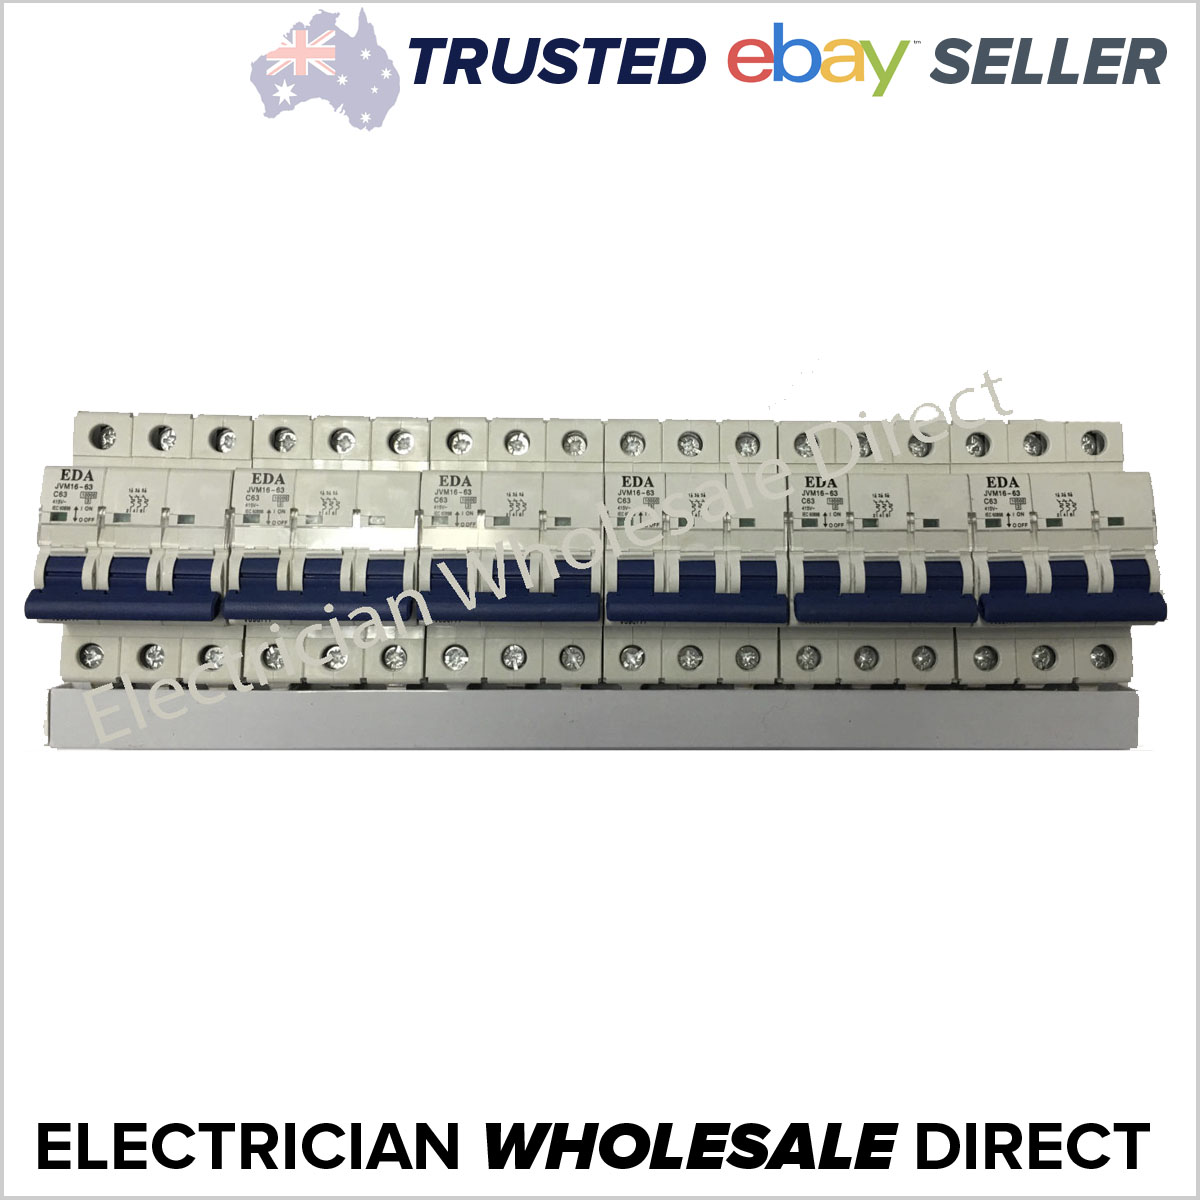 3 Phase Pole Busbar For Switchboard Bus Bar Circuit Breaker 18 Standards And Description Of Circuitbreakers Electrical 100 Quality Assured Gear Fully Tested To Australian As 3123 5 Year Warranty All Products